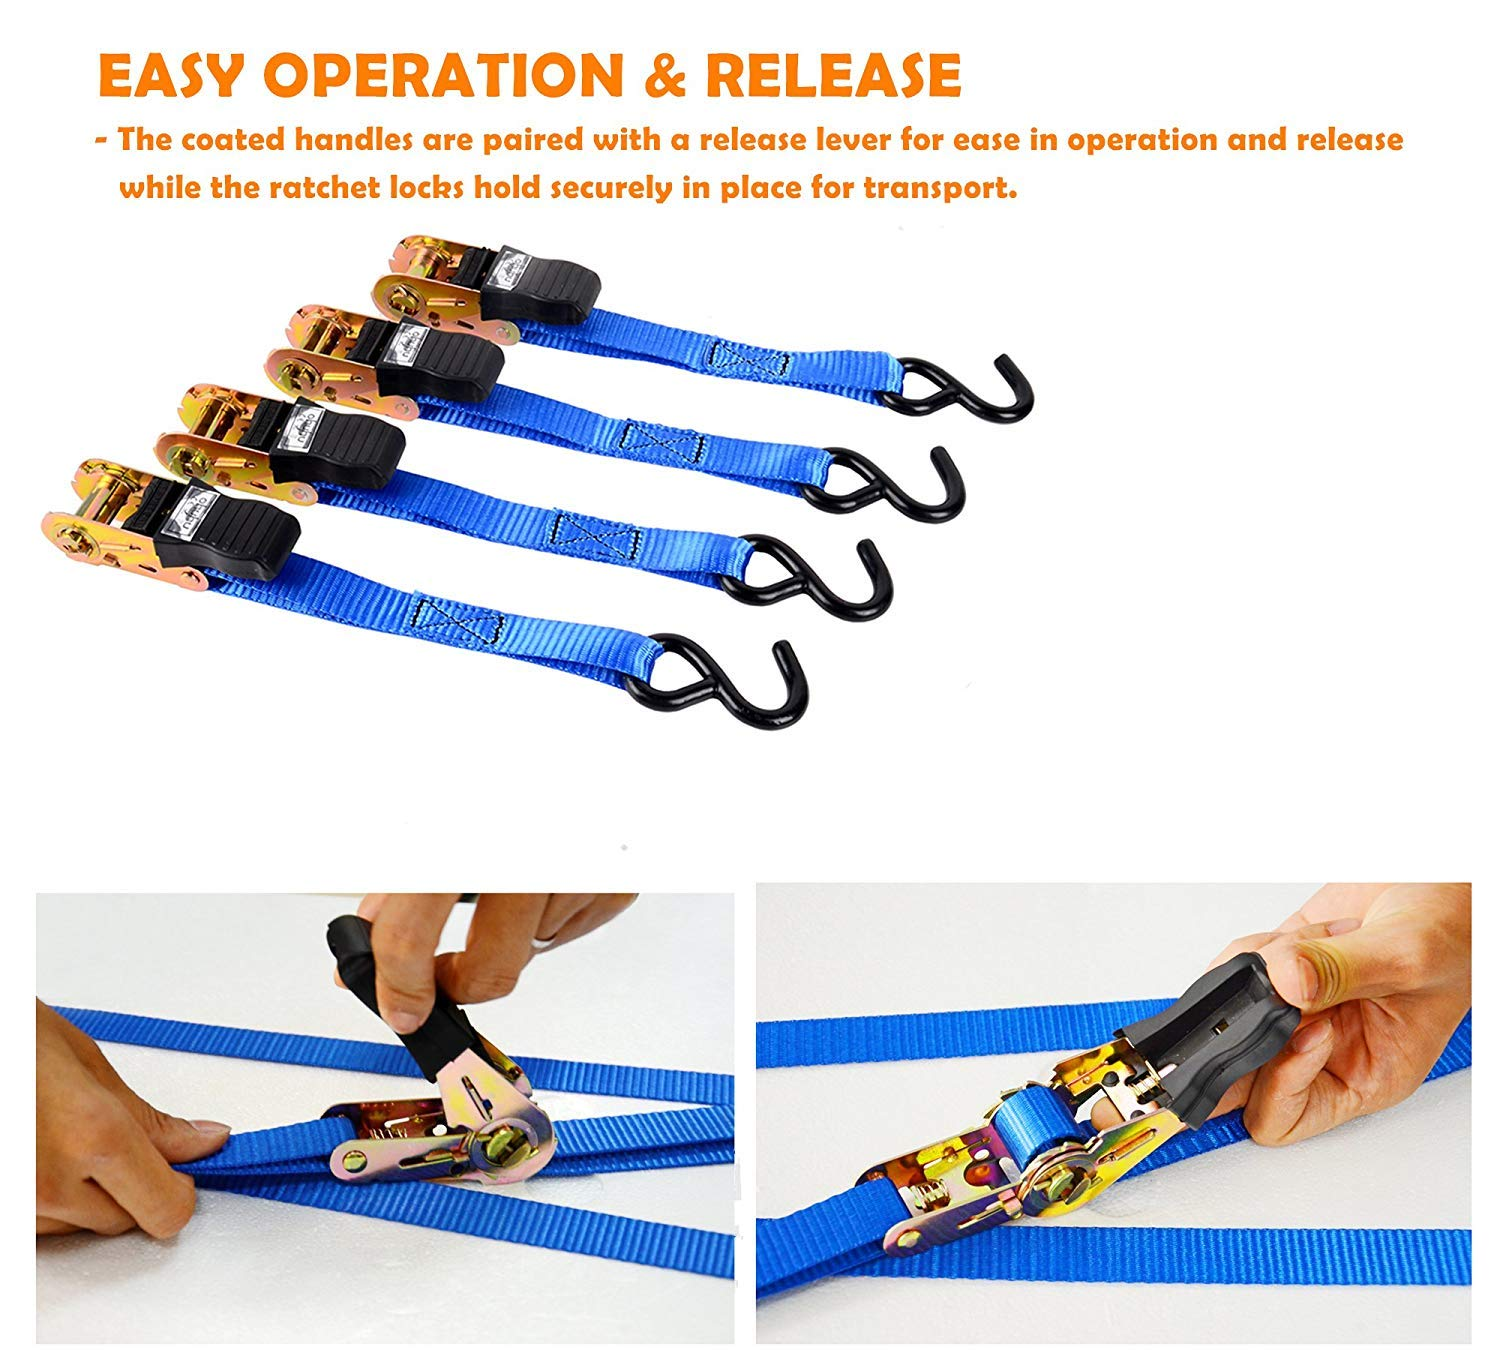 Cargo Straps for Lawn Equipment Ohuhu Ratchet Strap Blue 4332990983 Moving Appliances 15 Ft Ratchet Tie Downs Logistic Straps Motorcycle 500 Lbs Load Cap with 1500lb Breaking Limit 4 Pack